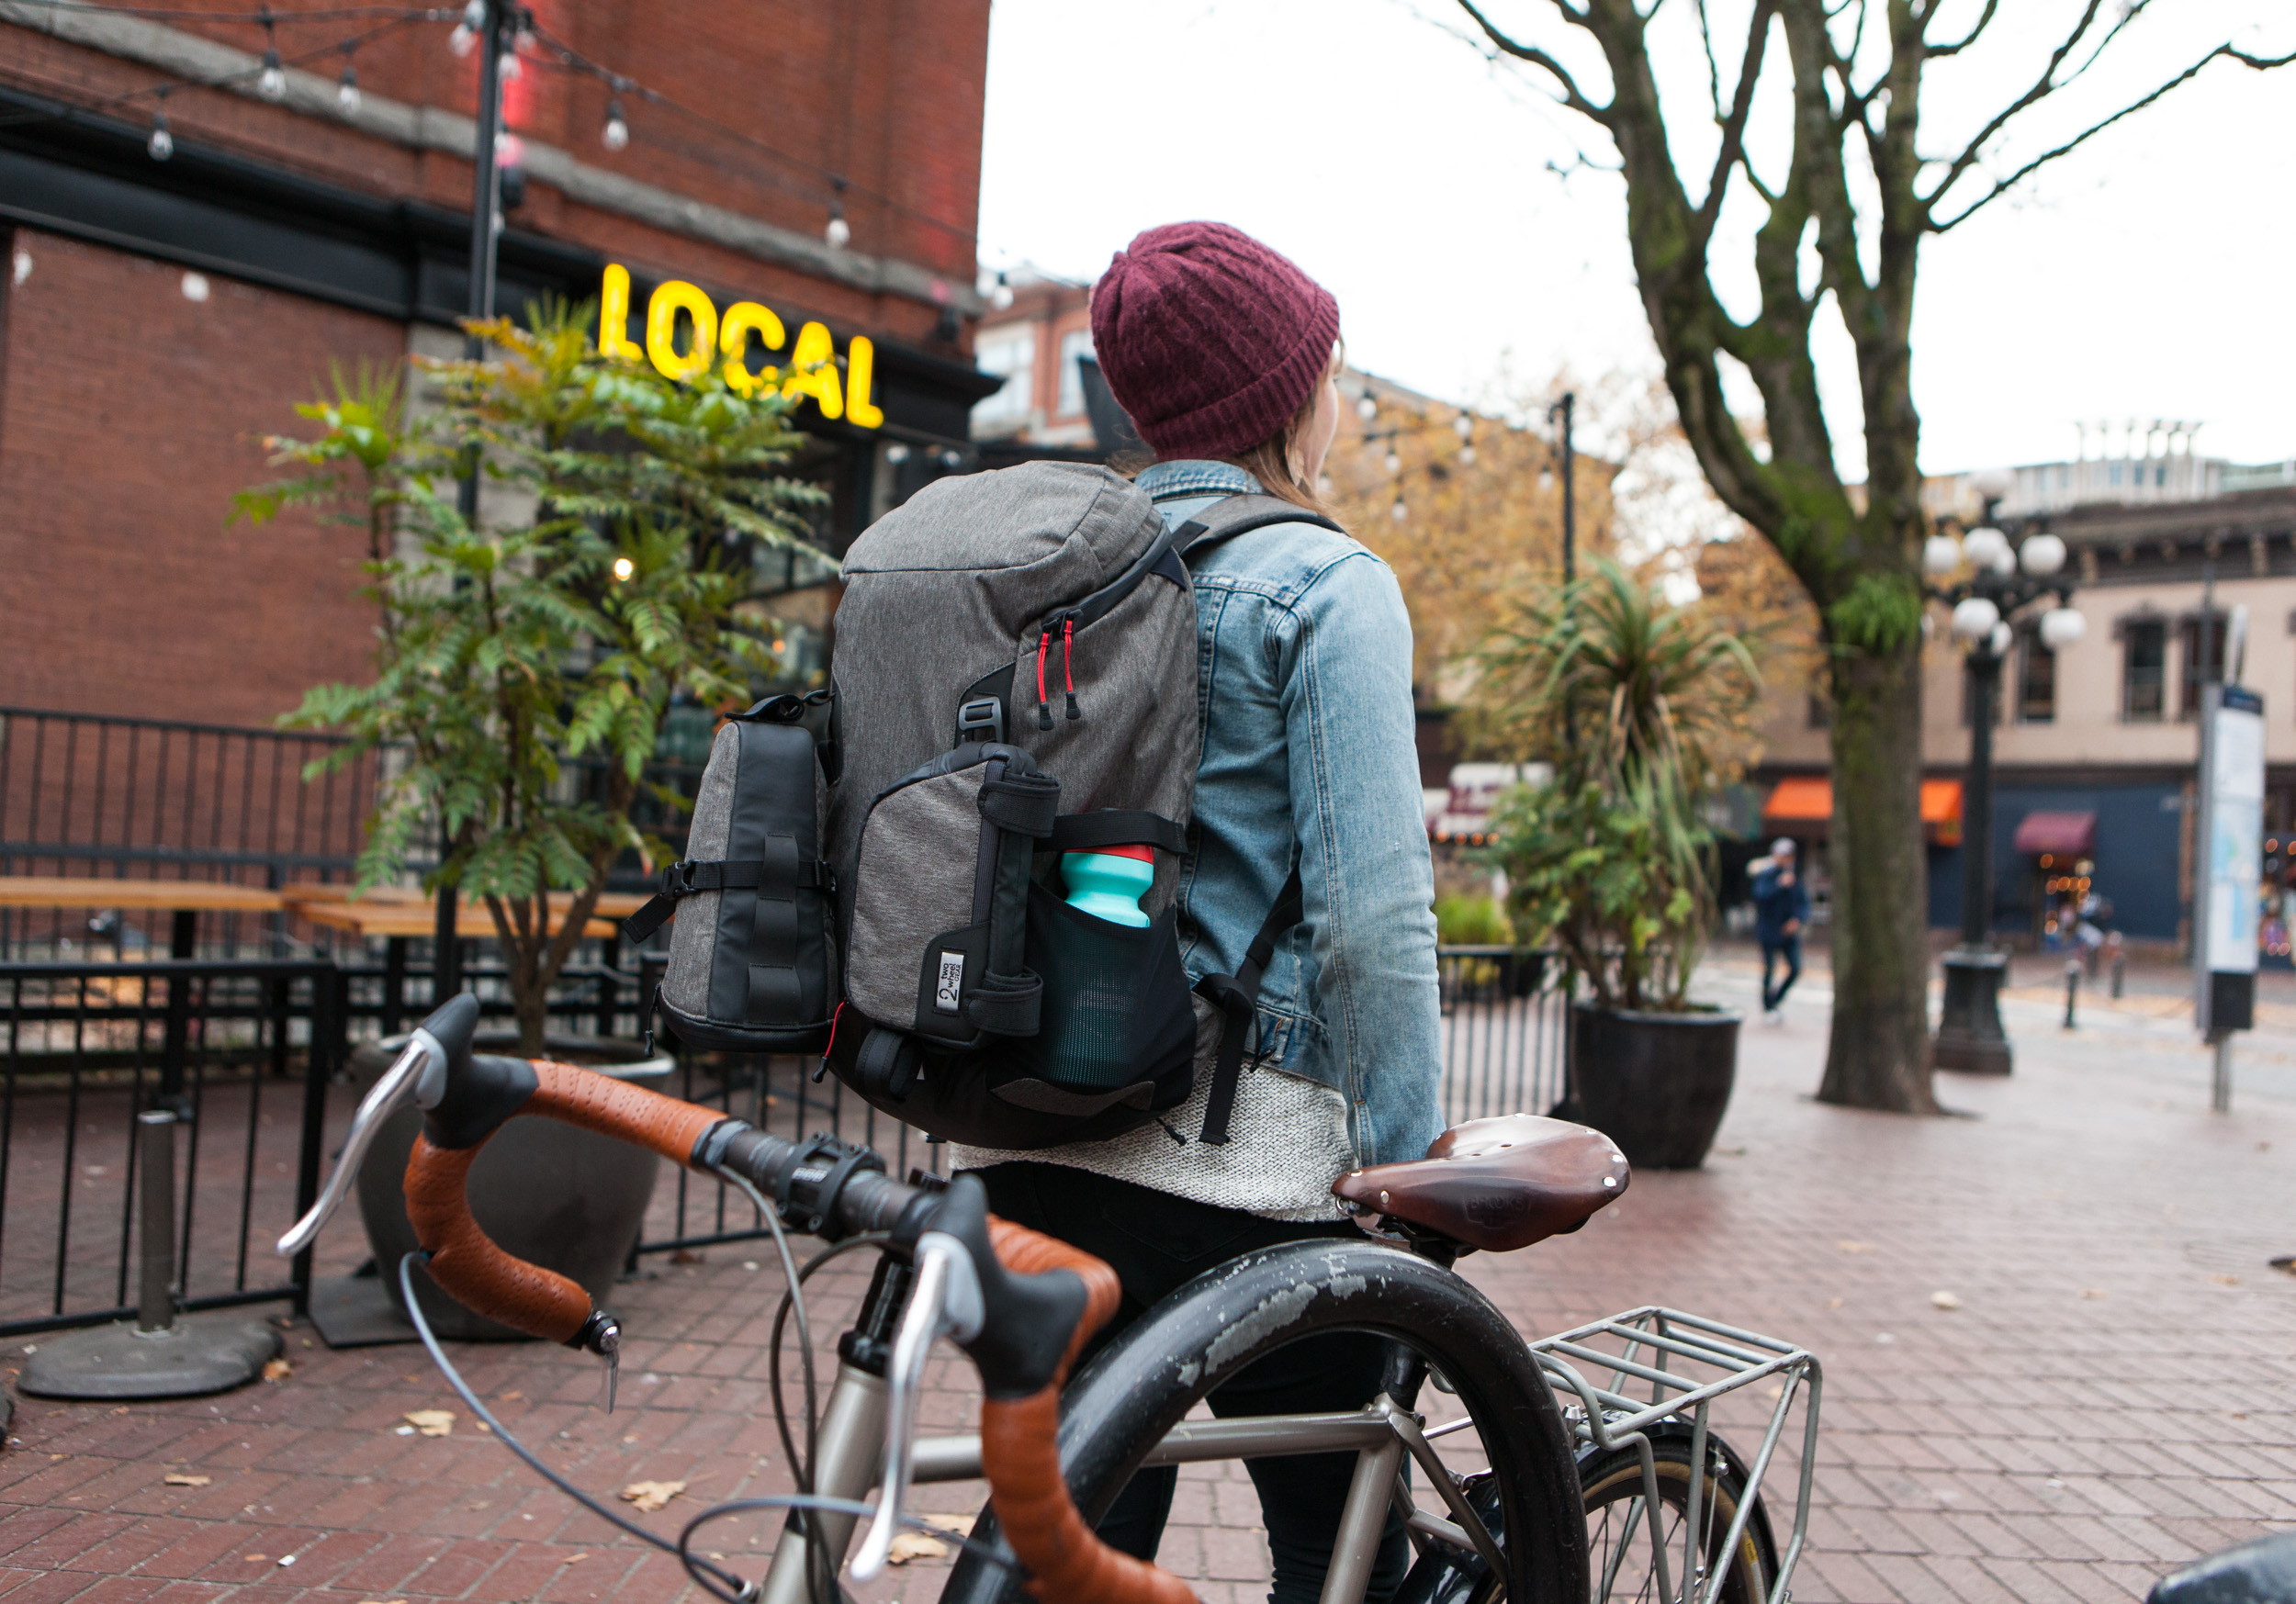 Modular commuting system features bike bags that attach to a backpack